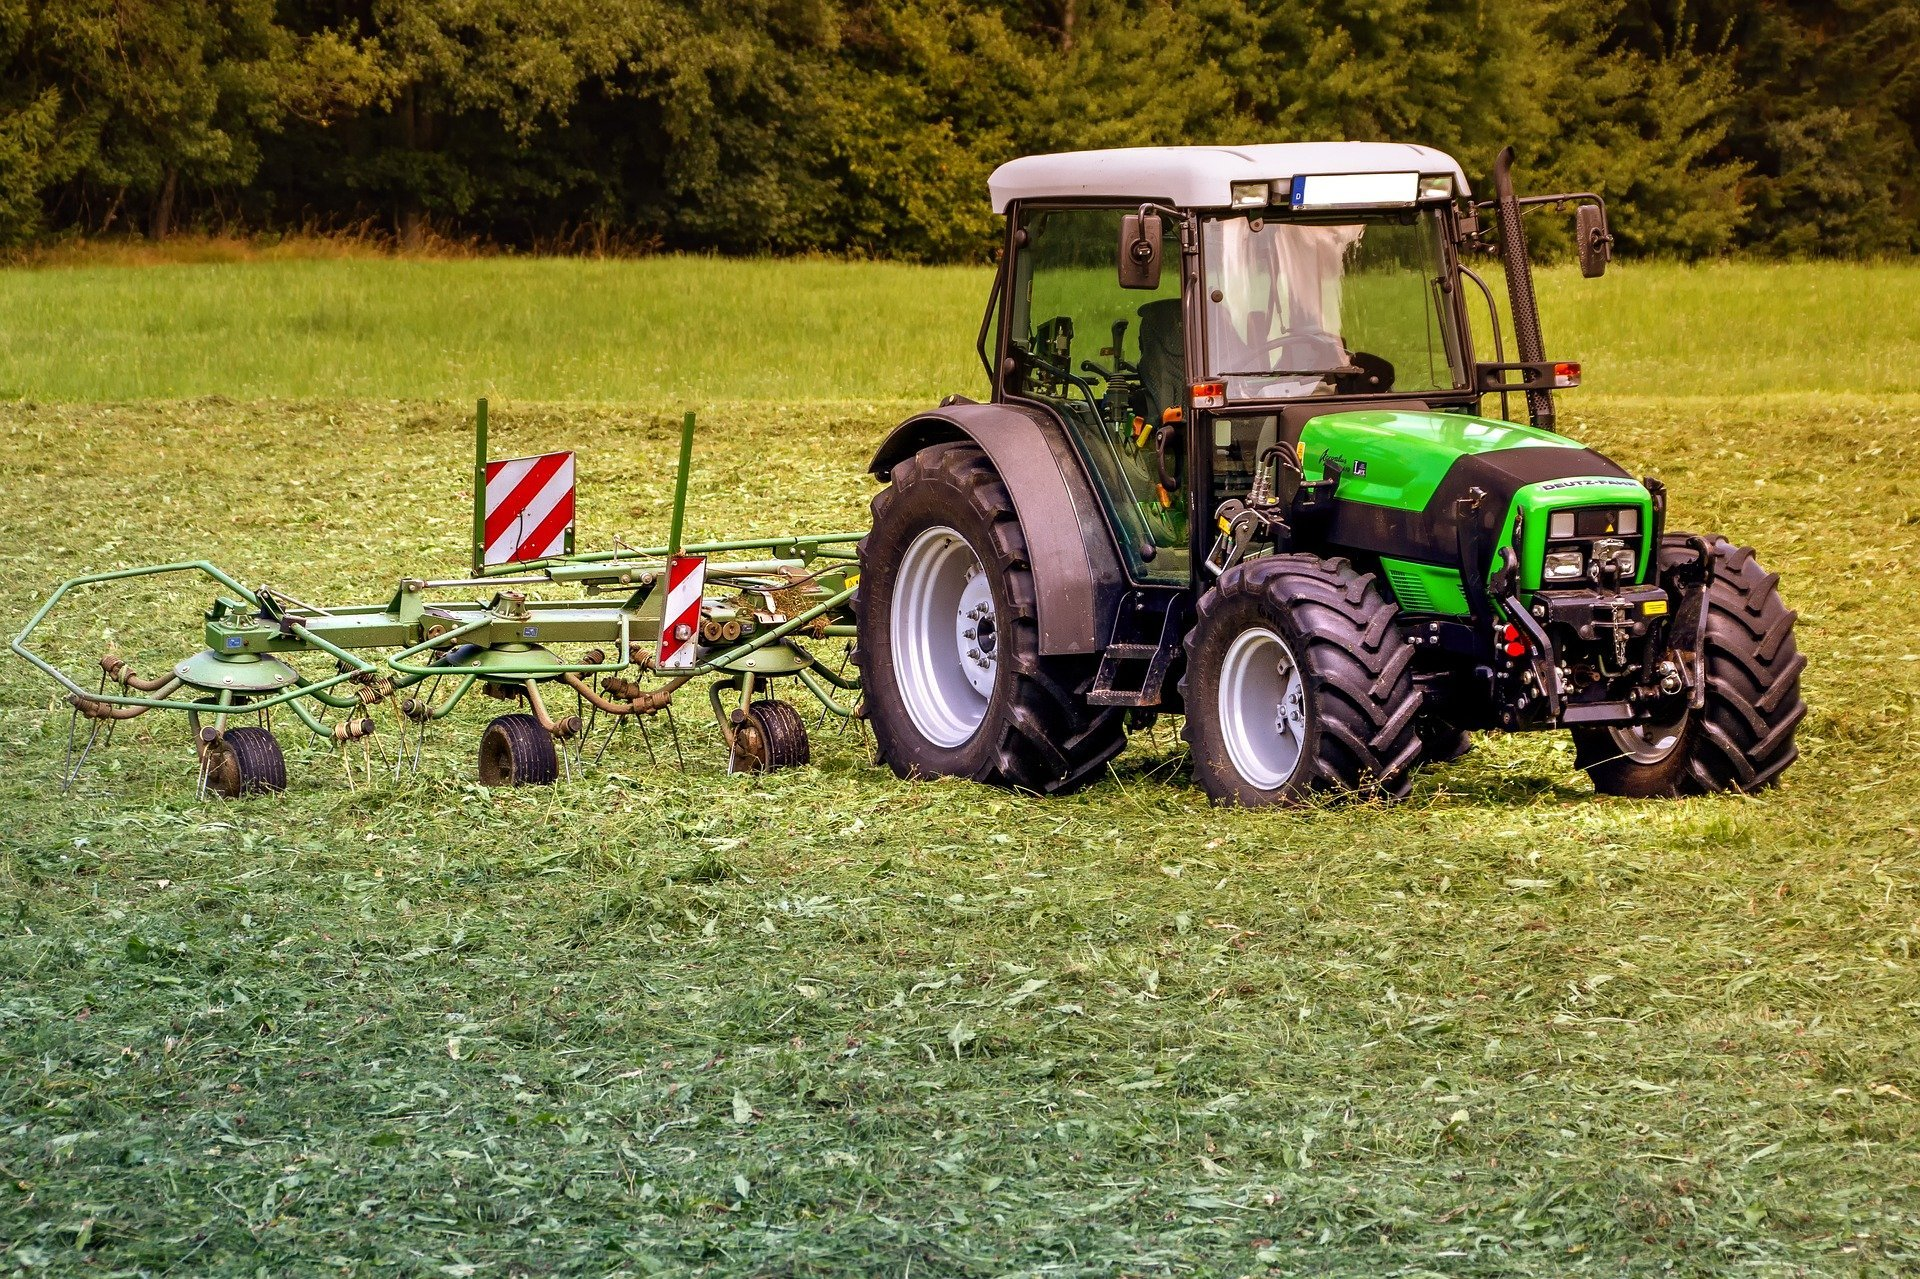 Tractors are now controlled from a smartphone or console using GPS.